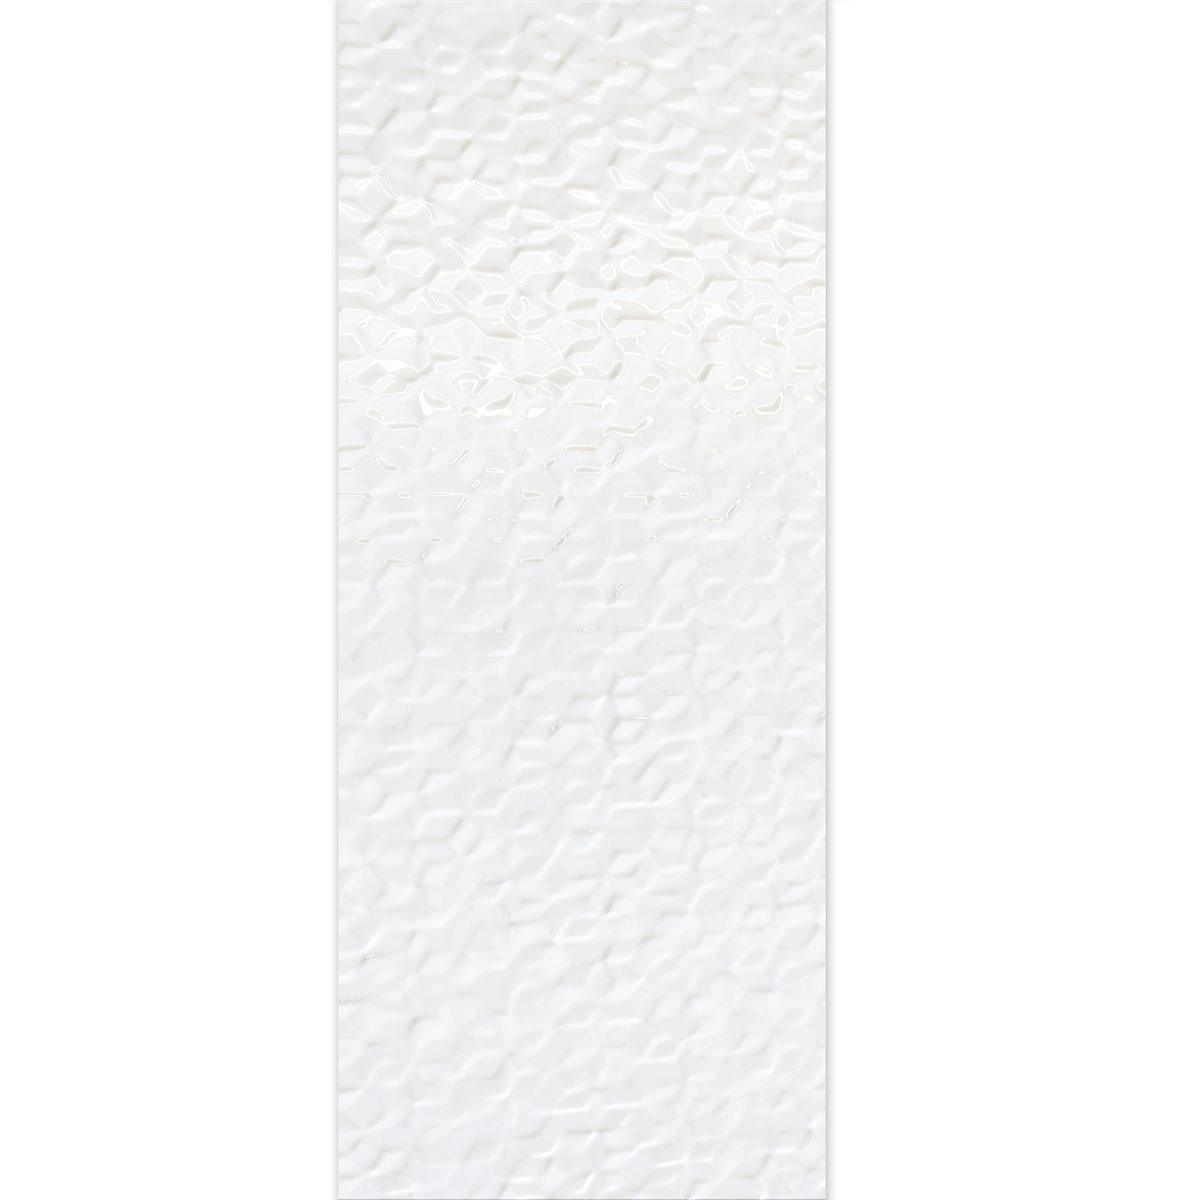 Carrelage mural structur blanc brillant 30x90cm lz69282 for Carrelage blanc